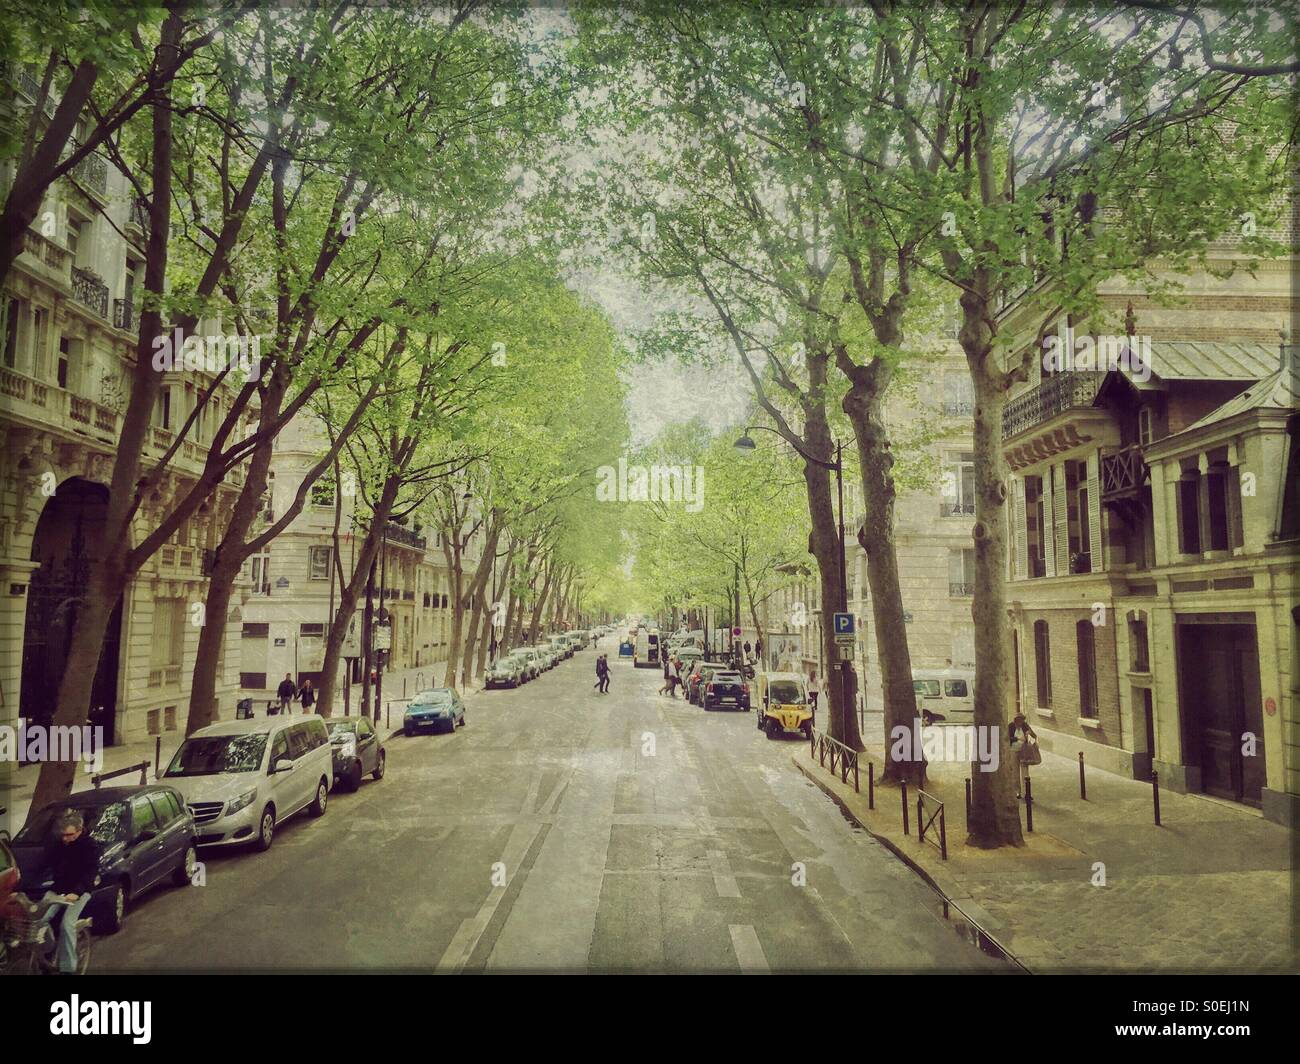 Typical Parisian neighborhood with tree-lined streets, old buildings with classical architecture, parked cars, people Stock Photo